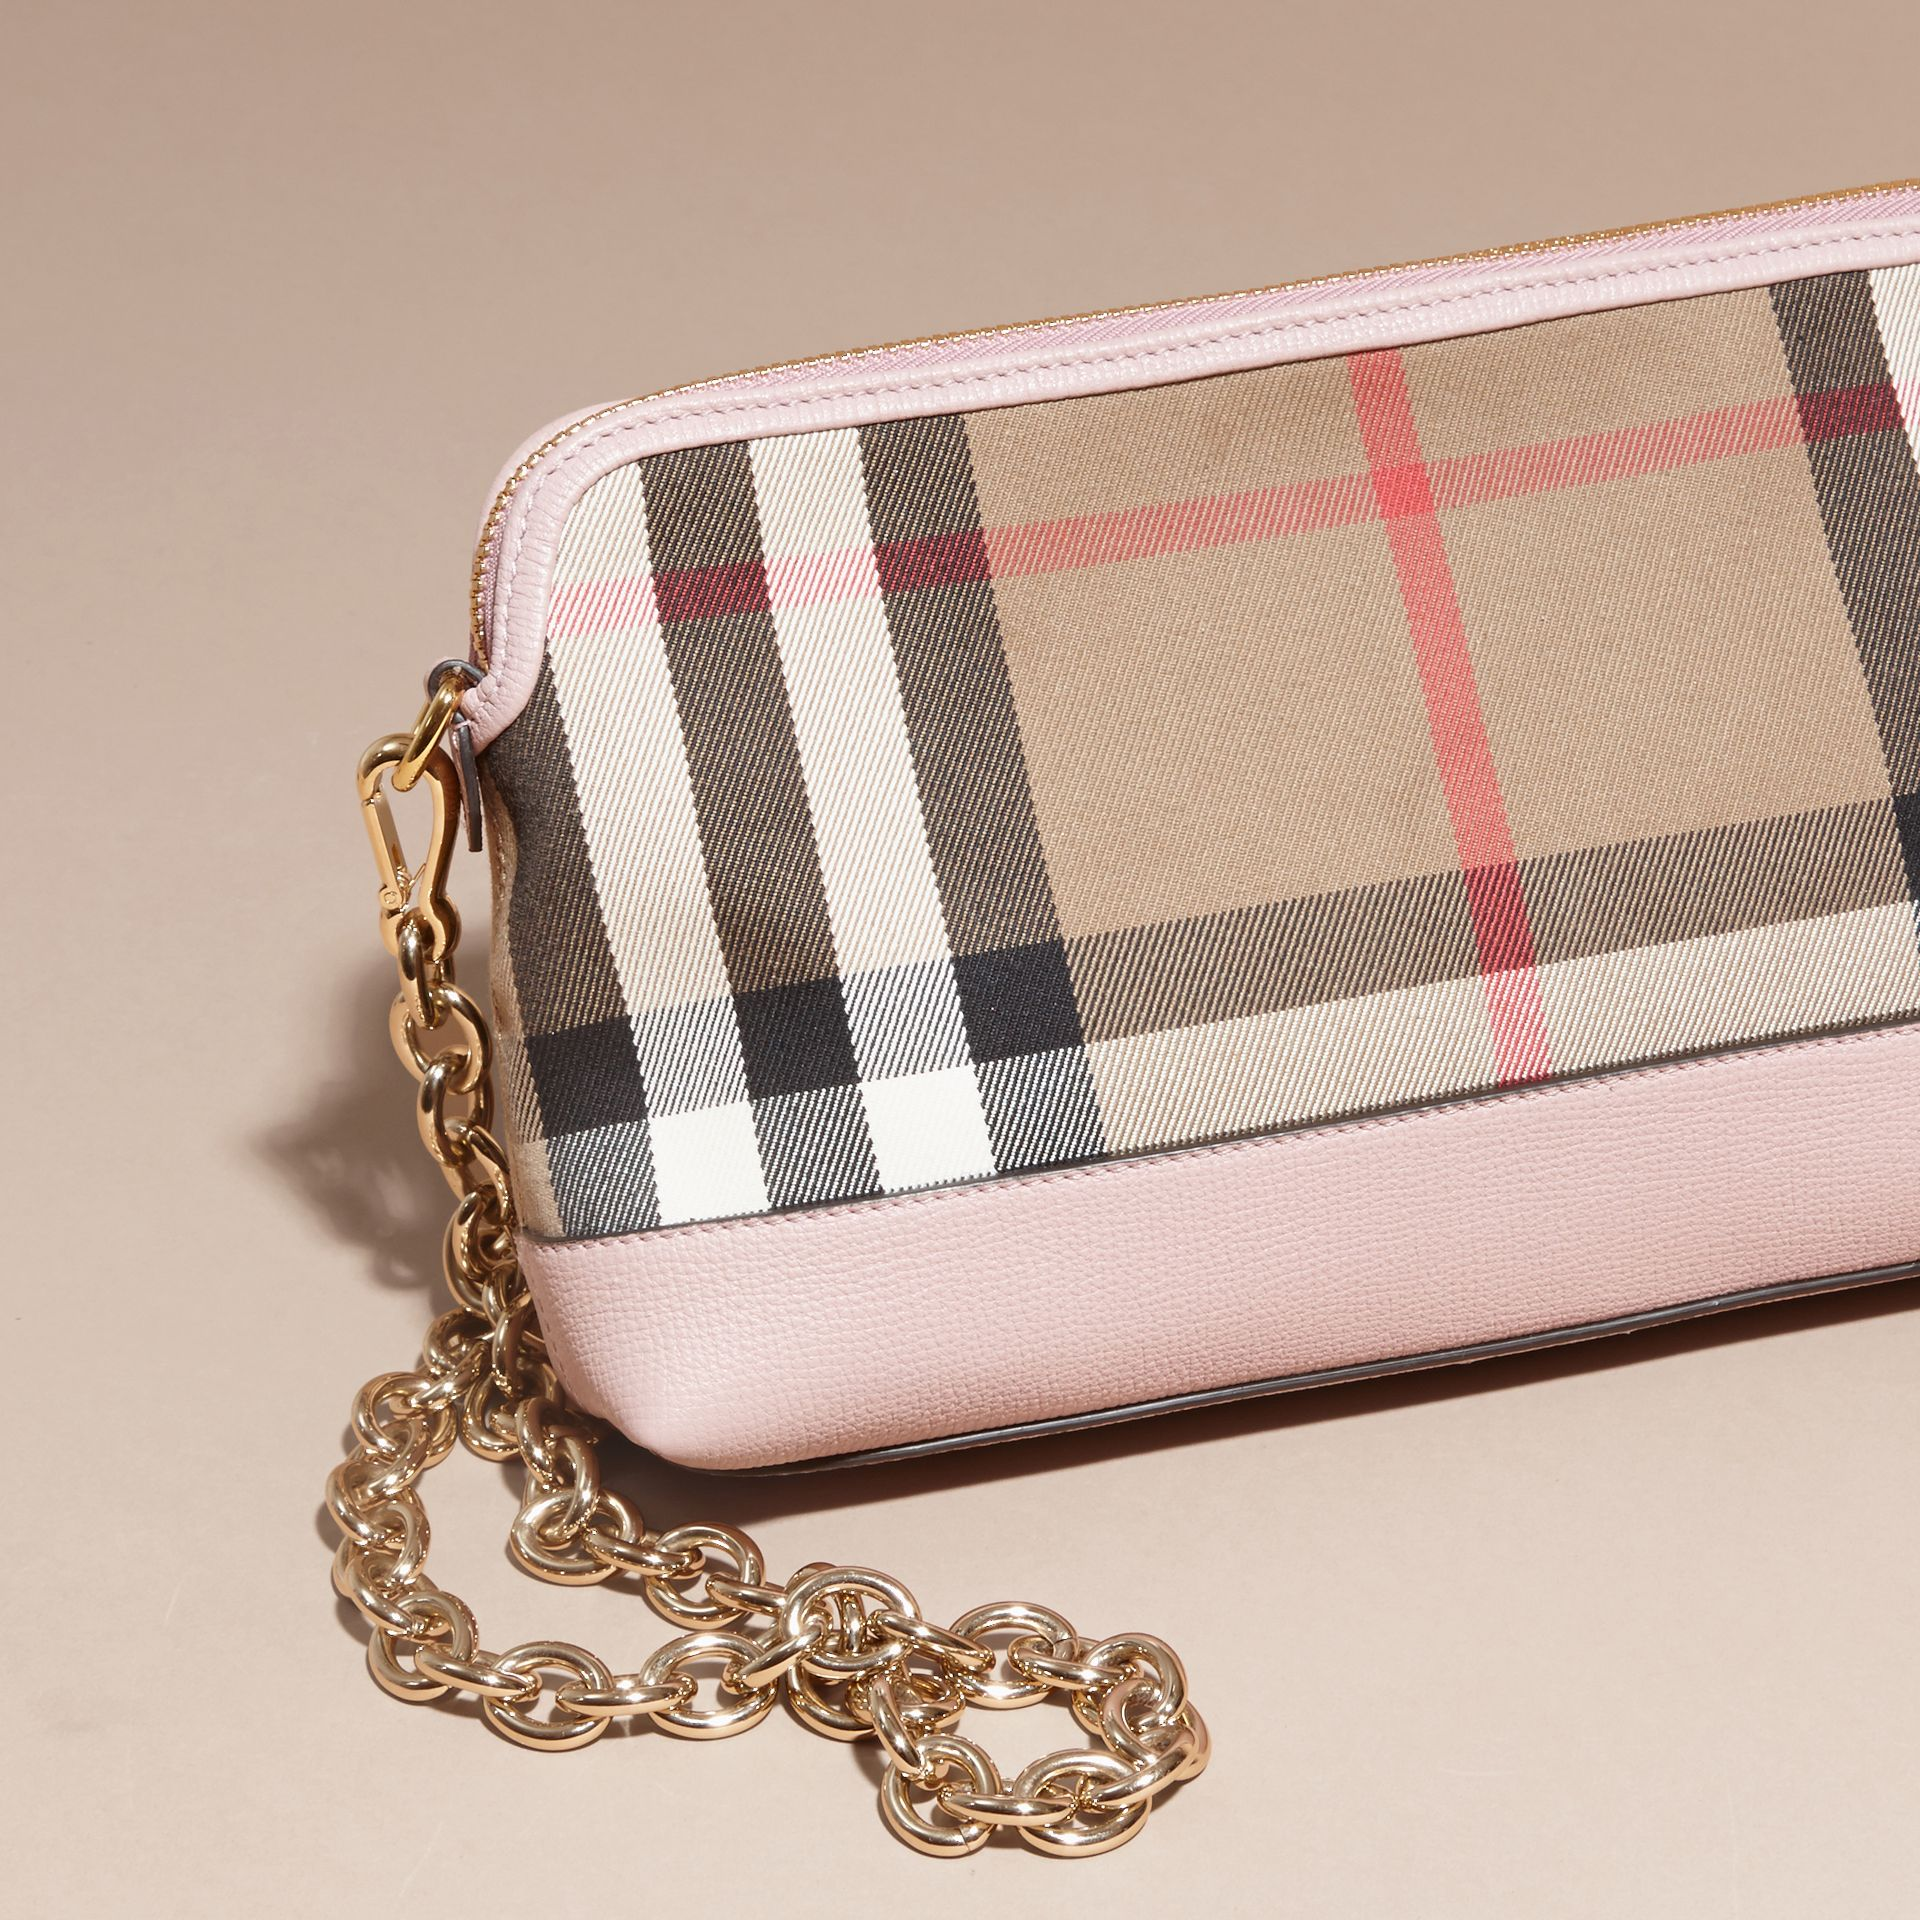 House Check and Leather Clutch Bag in Pale Orchid - Women | Burberry United Kingdom - gallery image 5